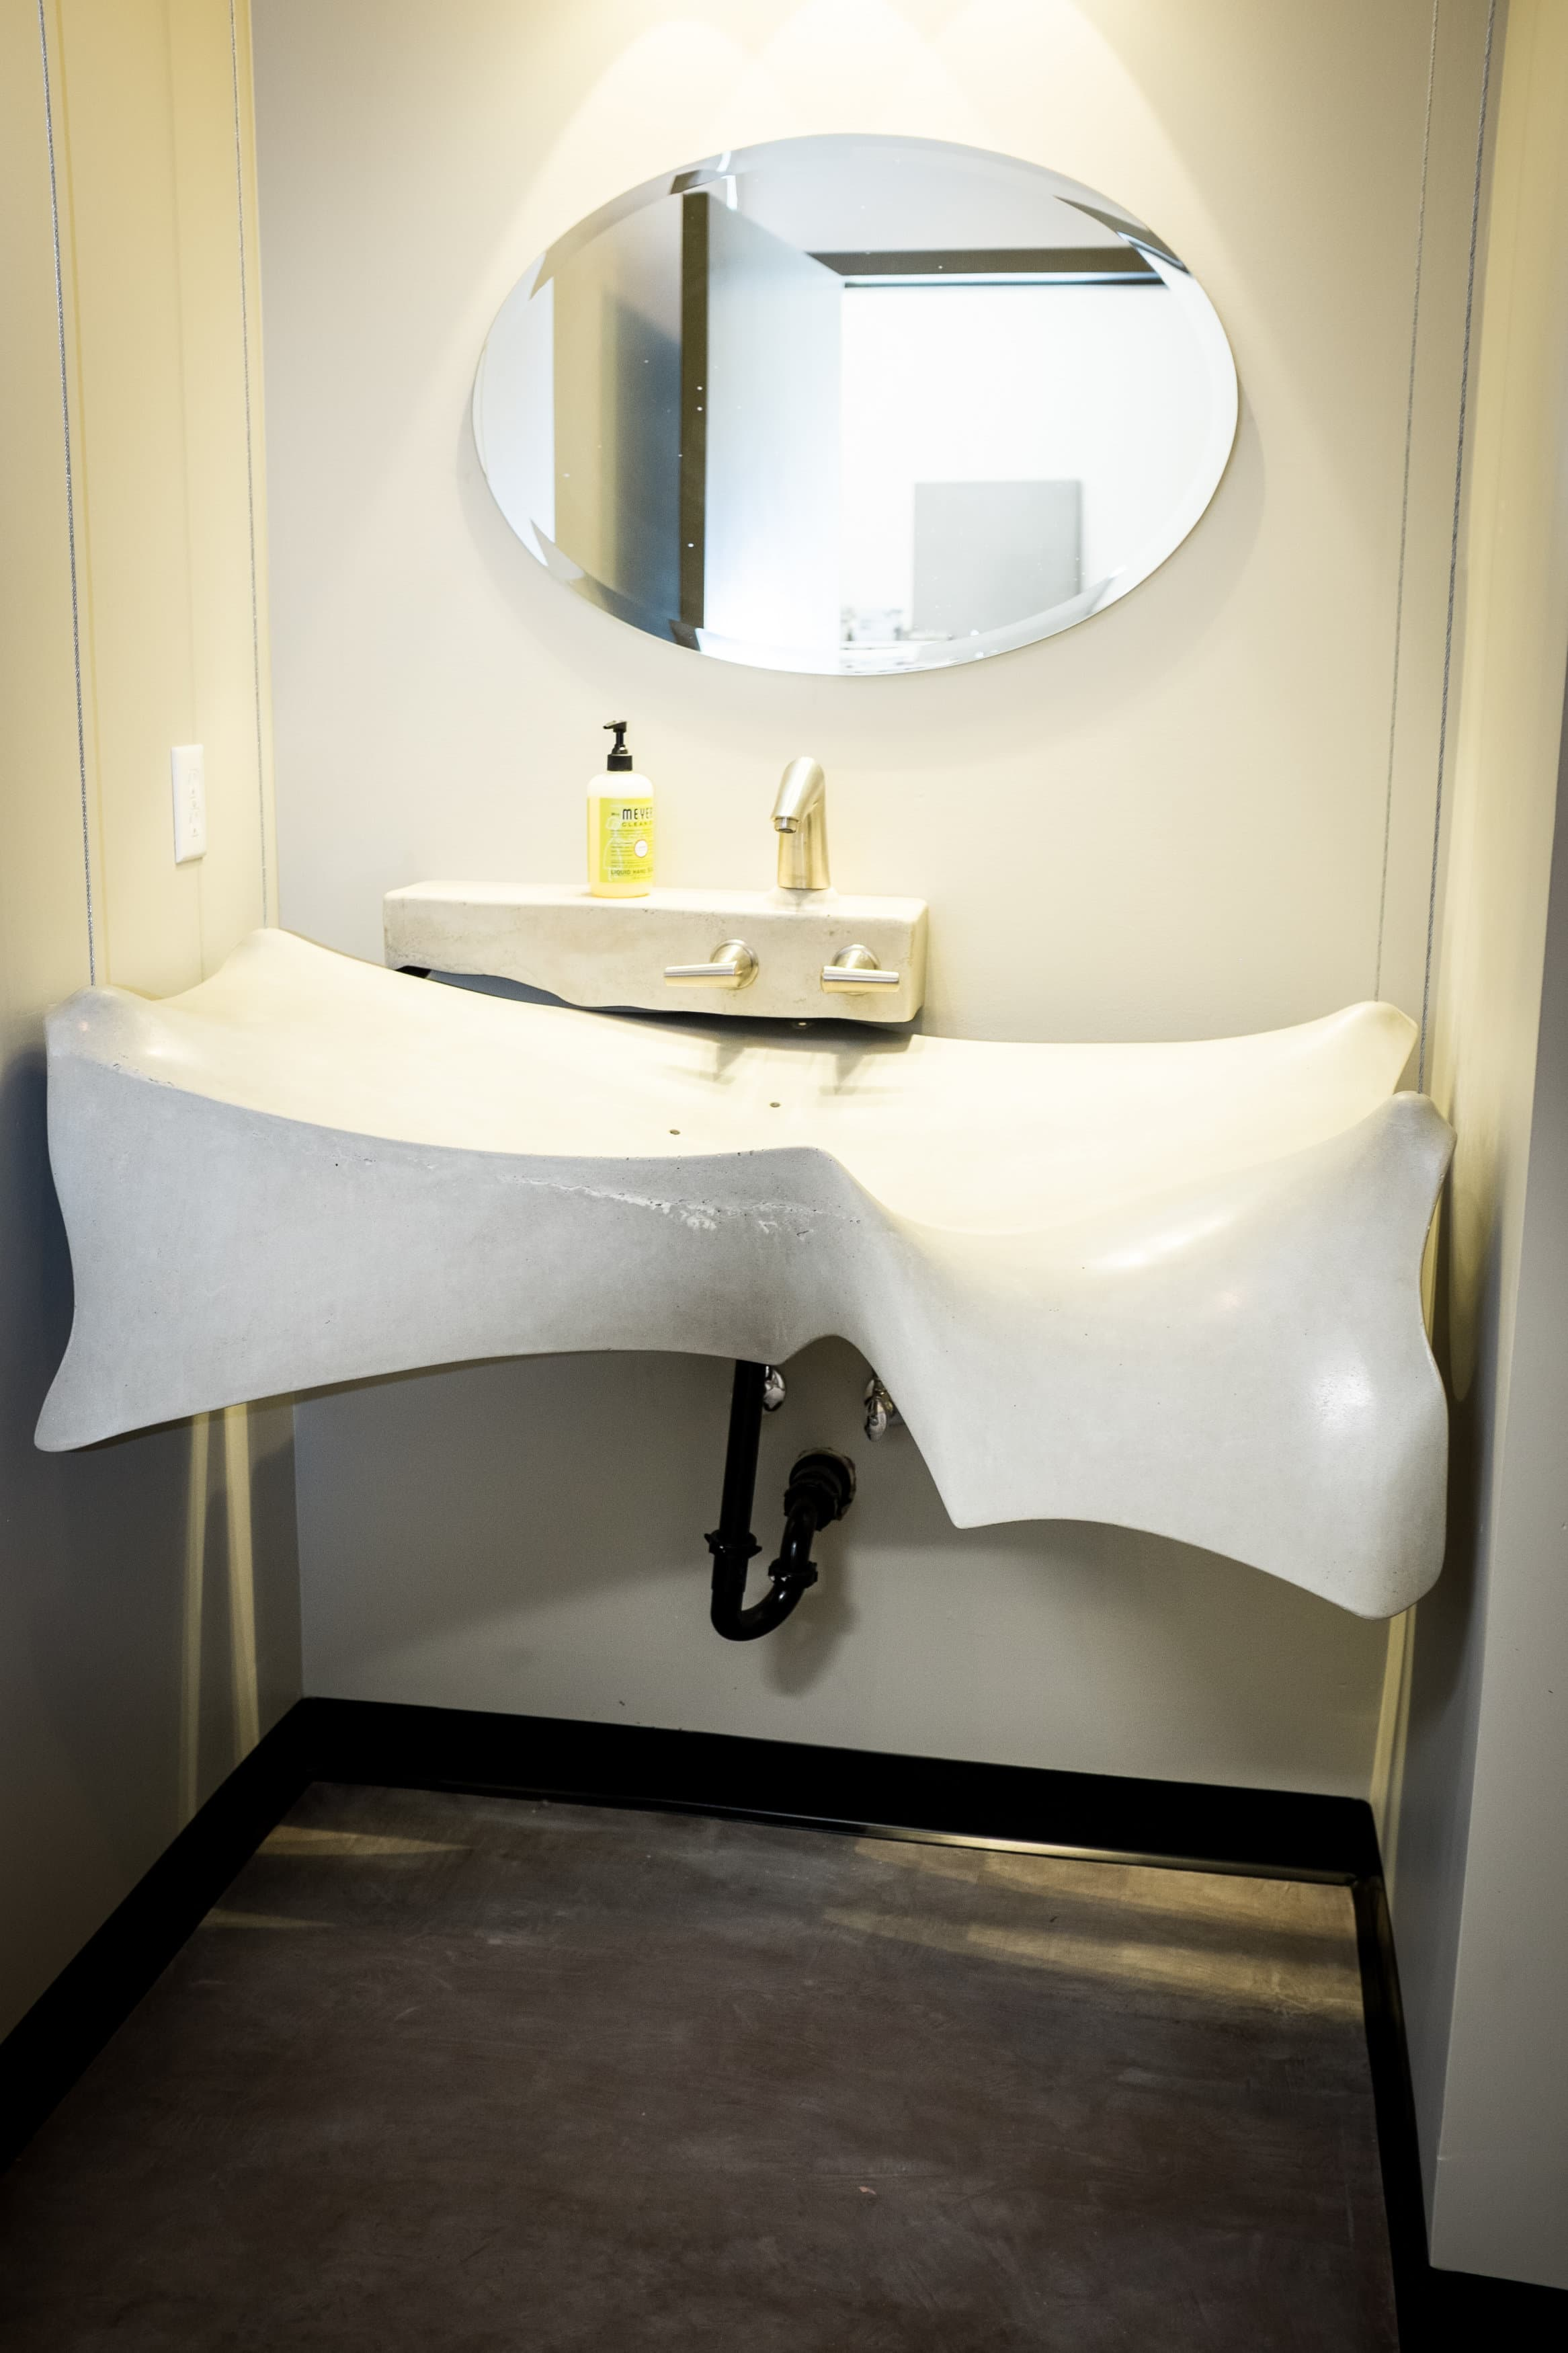 This is a custom sink that was made using a method called fabric forming. Fabric forms allow us to achieve beautiful flowing contours and points of tension. This particular sink pushed the limits of this technique; achieving thin fins and subtle drainage. Another unique feature is that it is suspended by cables from the ceiling; presenting unique plumbing challenges. #residential